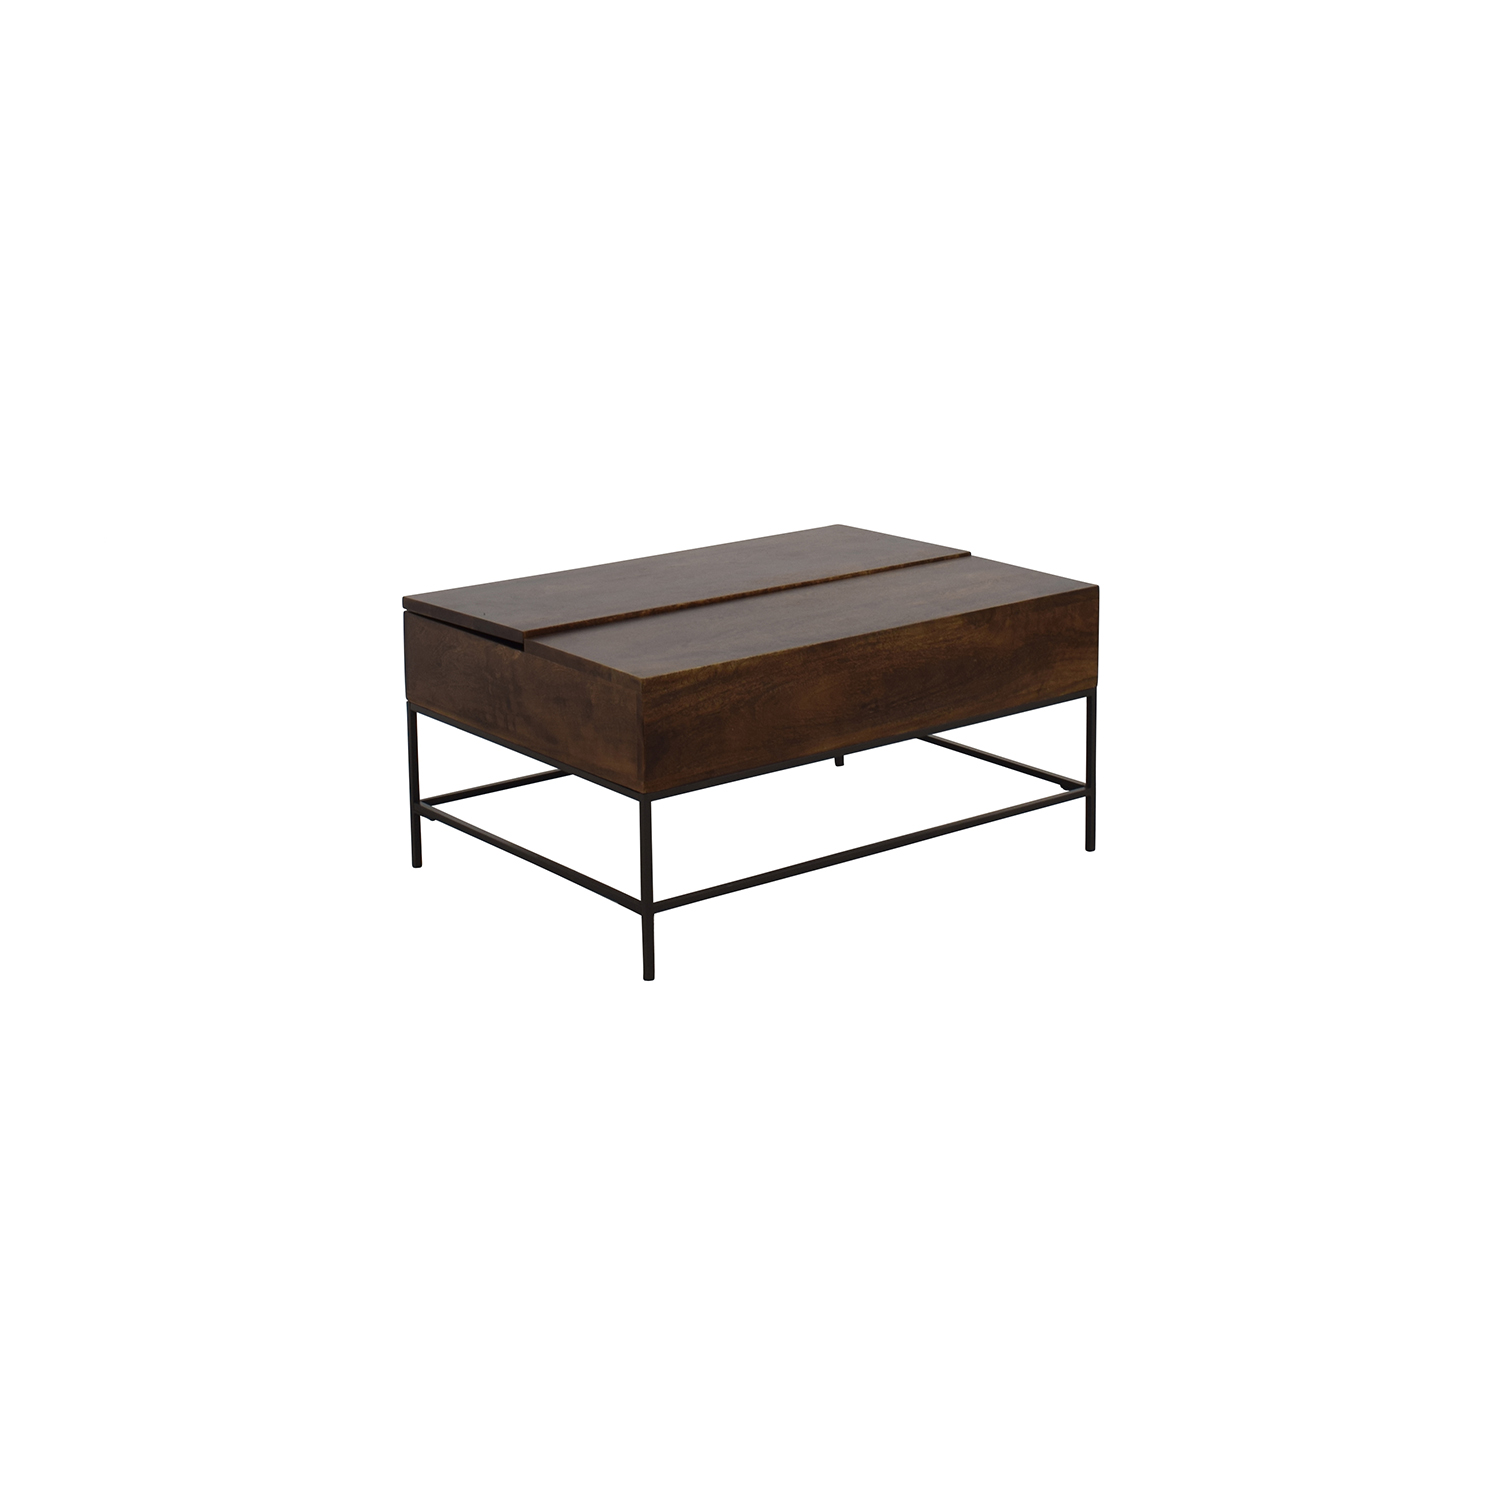 75 off west elm west elm industrial storage coffee for West elm industrial storage coffee table